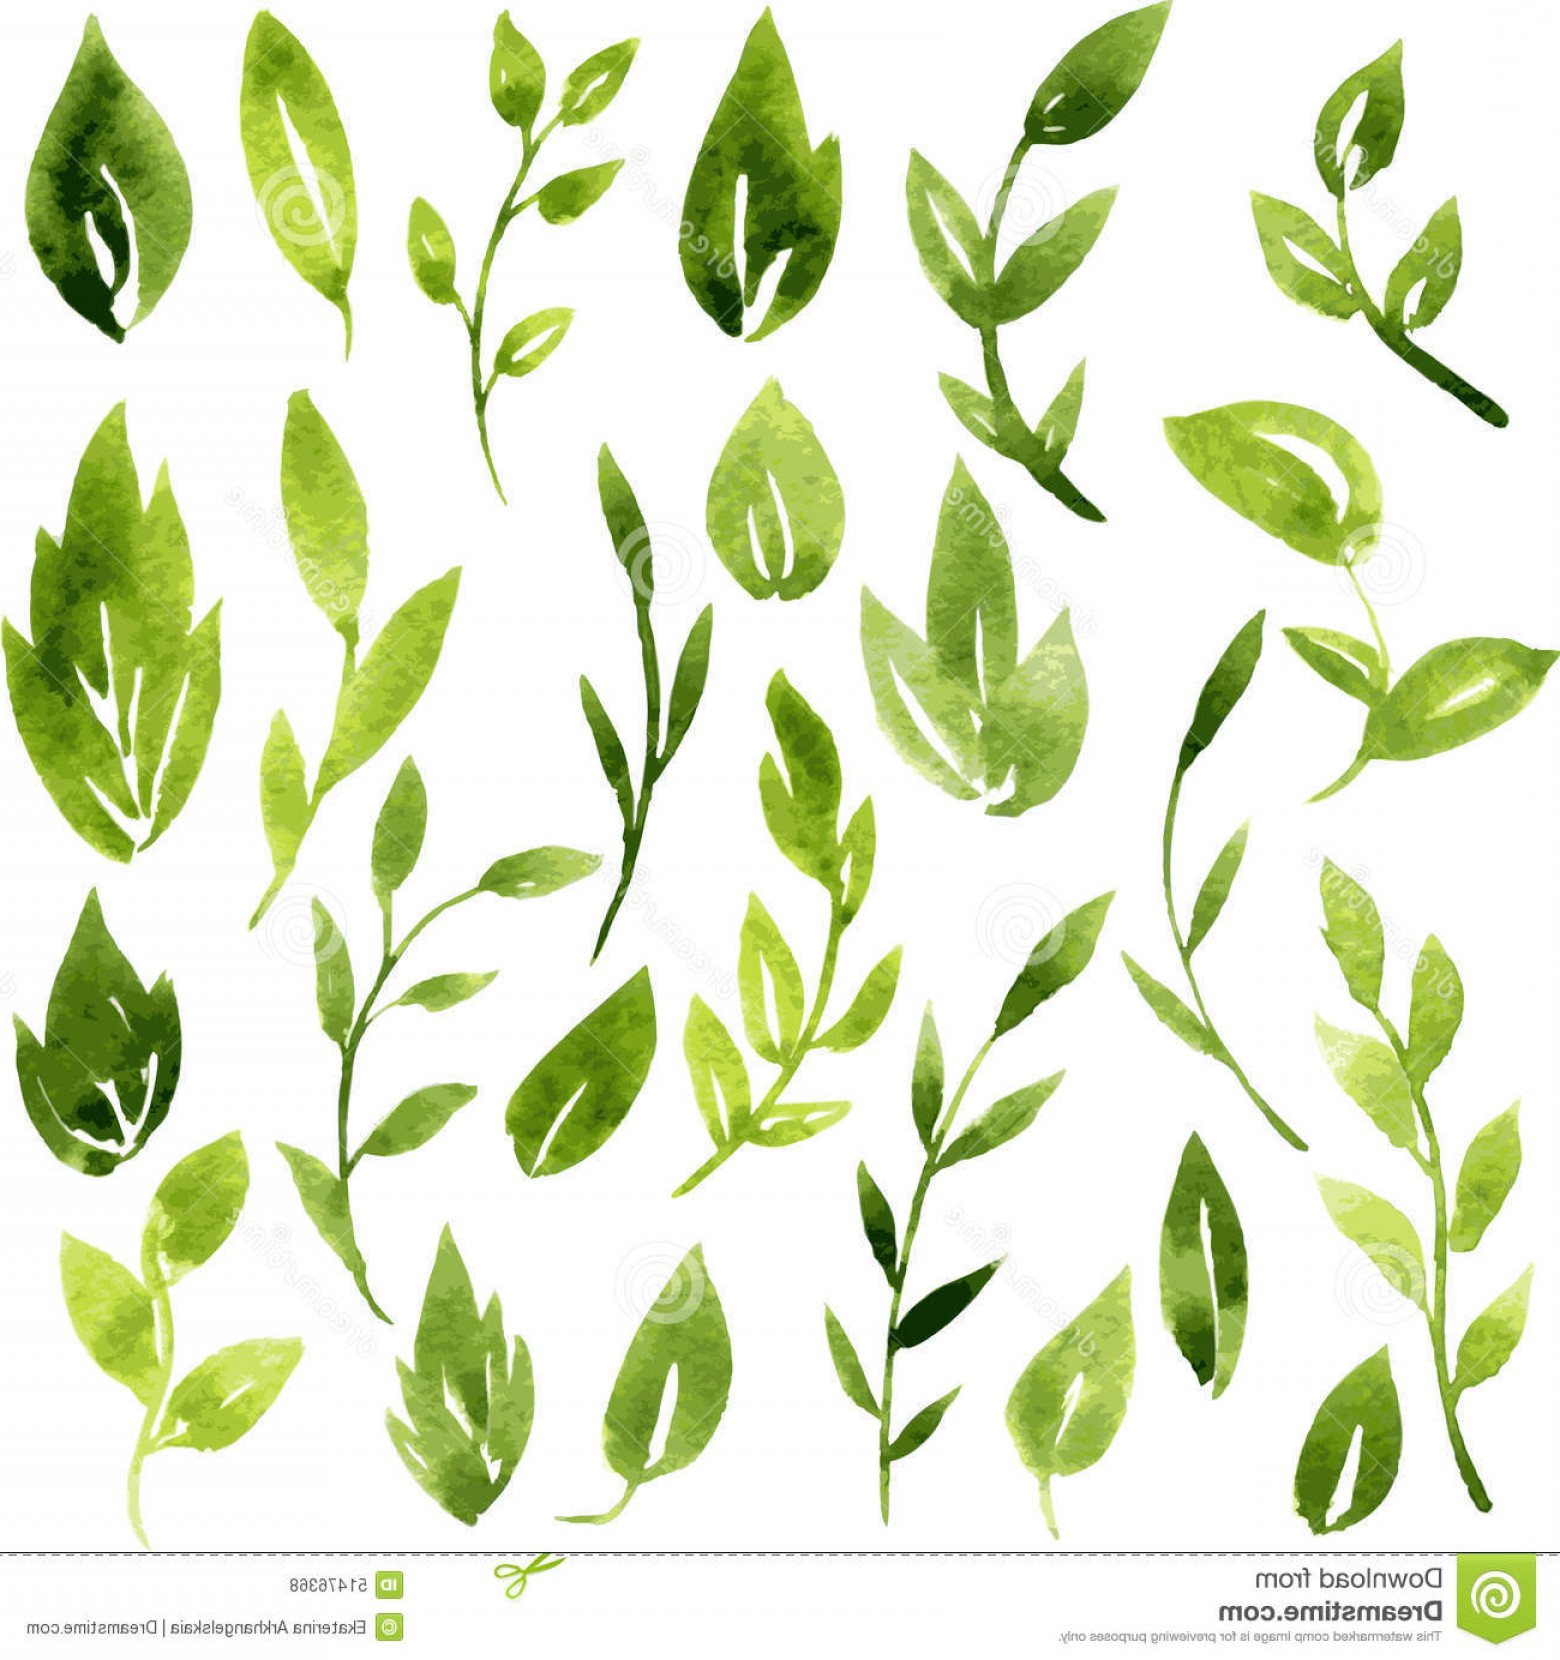 Award Vector Leaves: Stock Illustration Vector Watercolor Green Leaves Branches Set Hand Drawn Design Elements Image